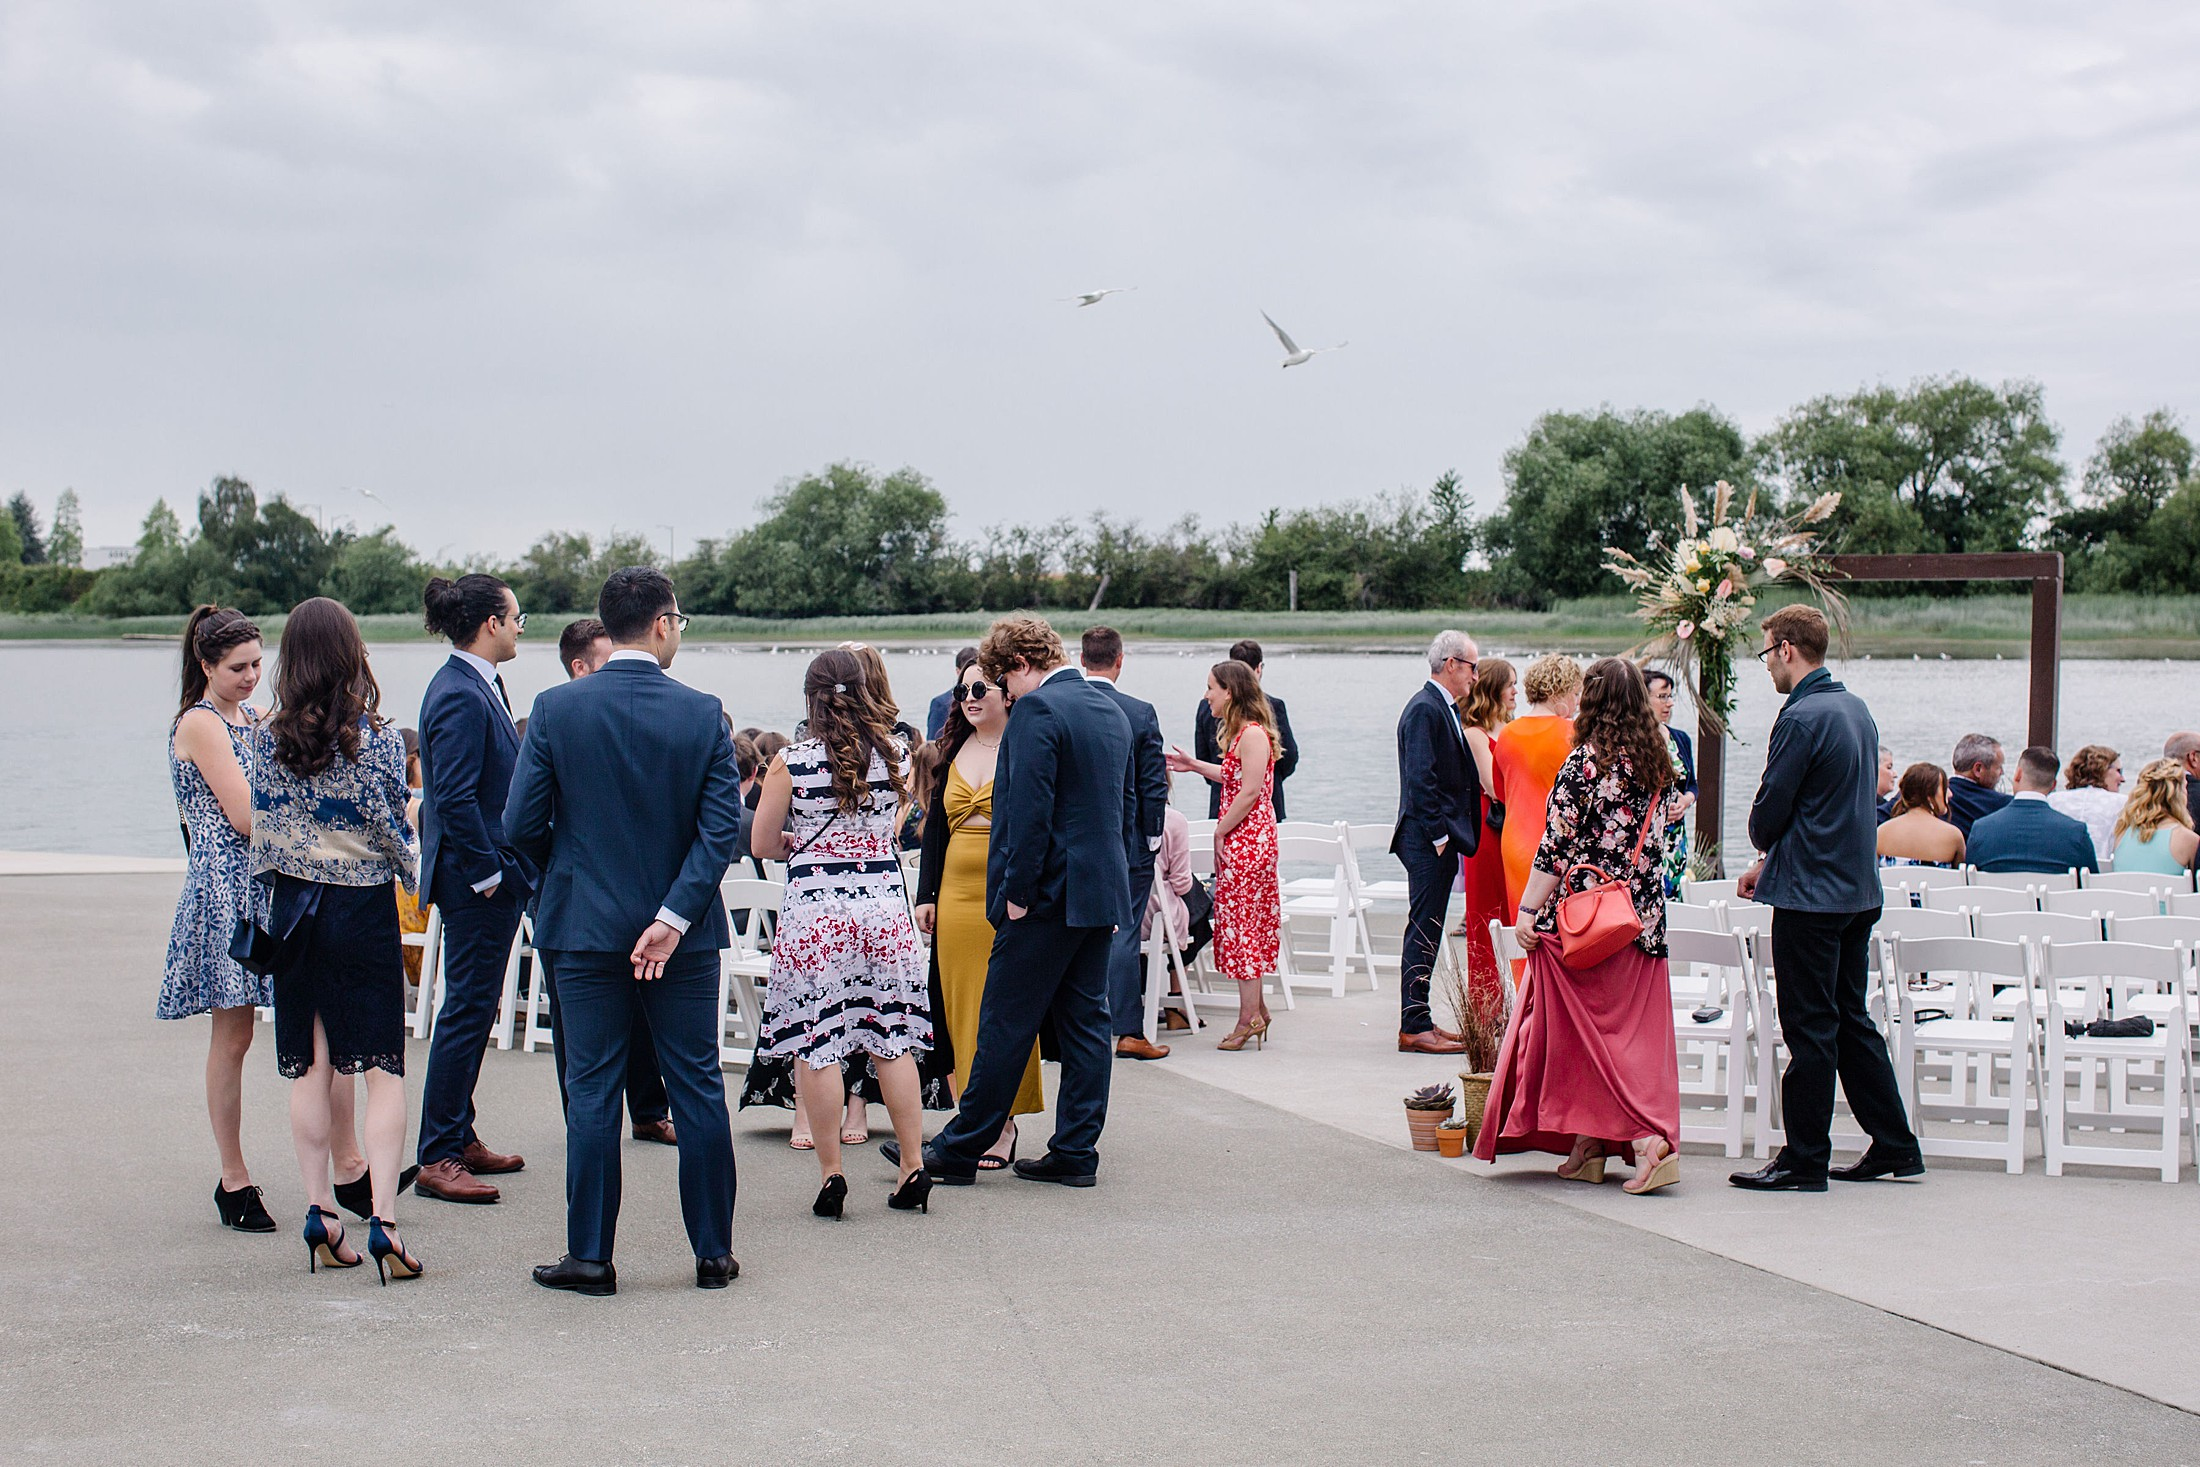 June23.DavidElena42120_Note Photography Documentary Photographer Wedding Photos Vancouver B.C. Best 2019 2020 Vancouver Island UBC Boathouse Tacofino Catering Richmond Floralista Man About Town DJ Outdoor Ceremony.jpg